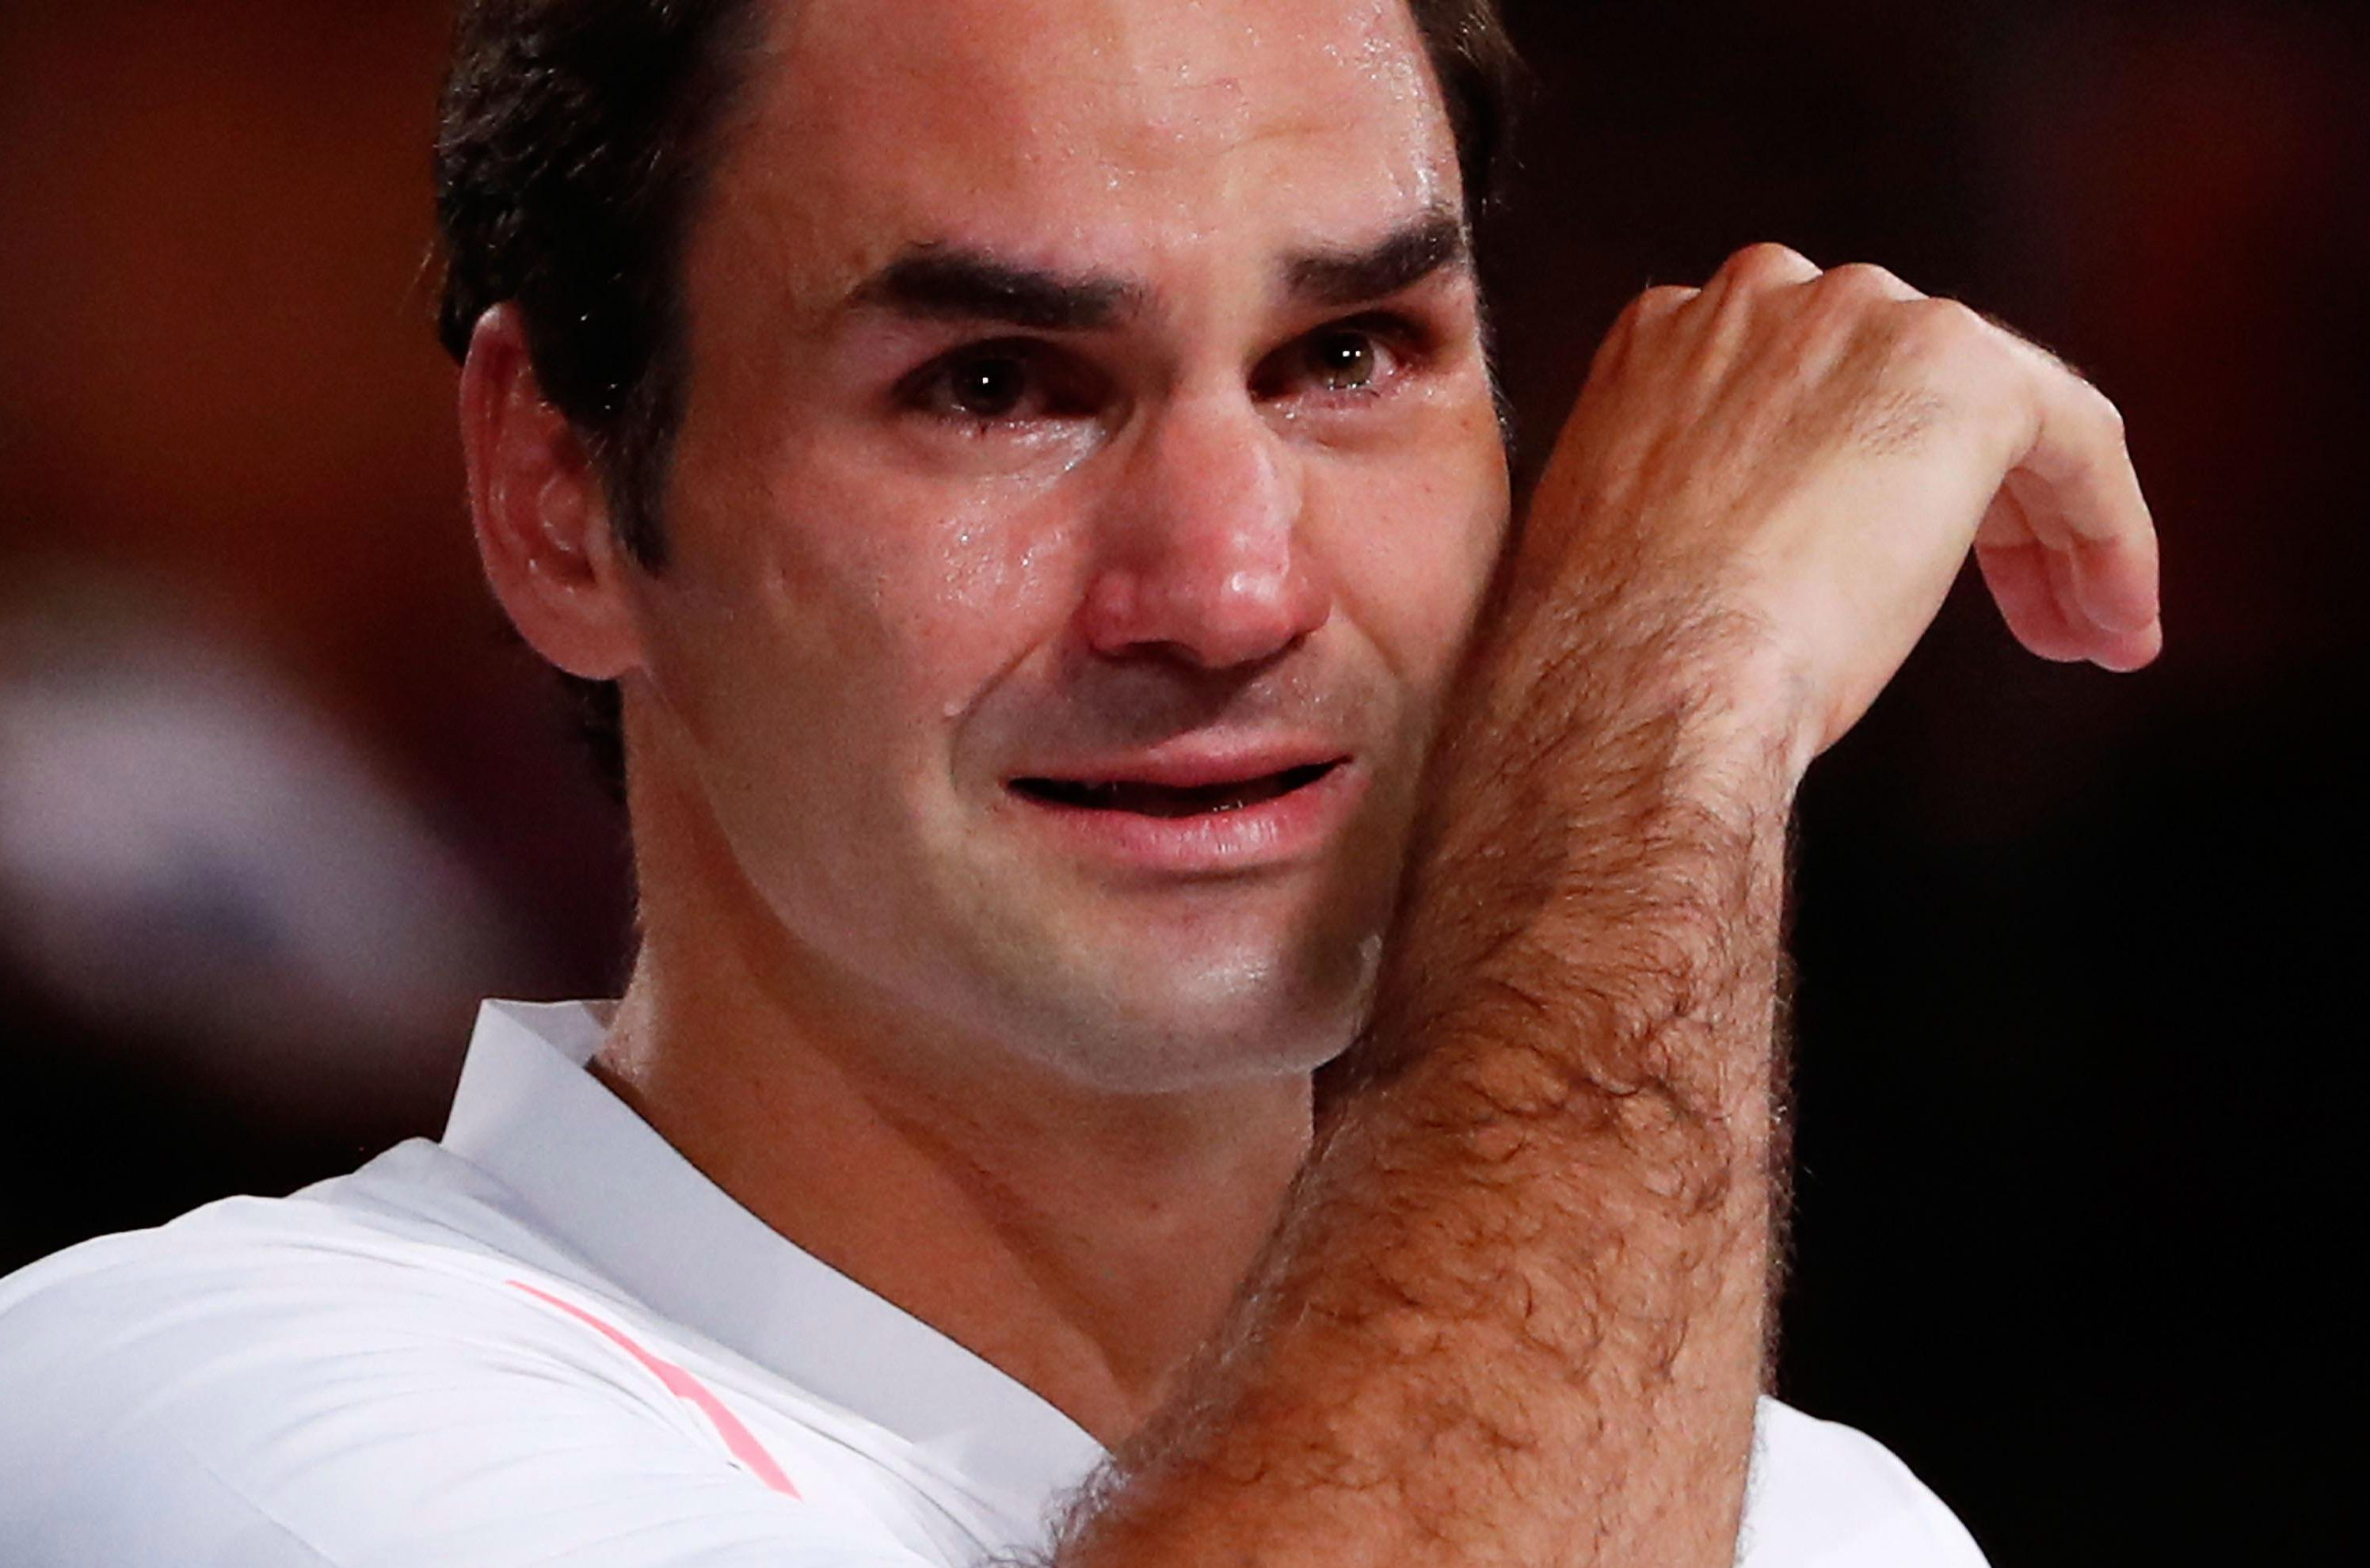 Federer was overcome with emotion after rewriting the history books with his sixth Australian Open title